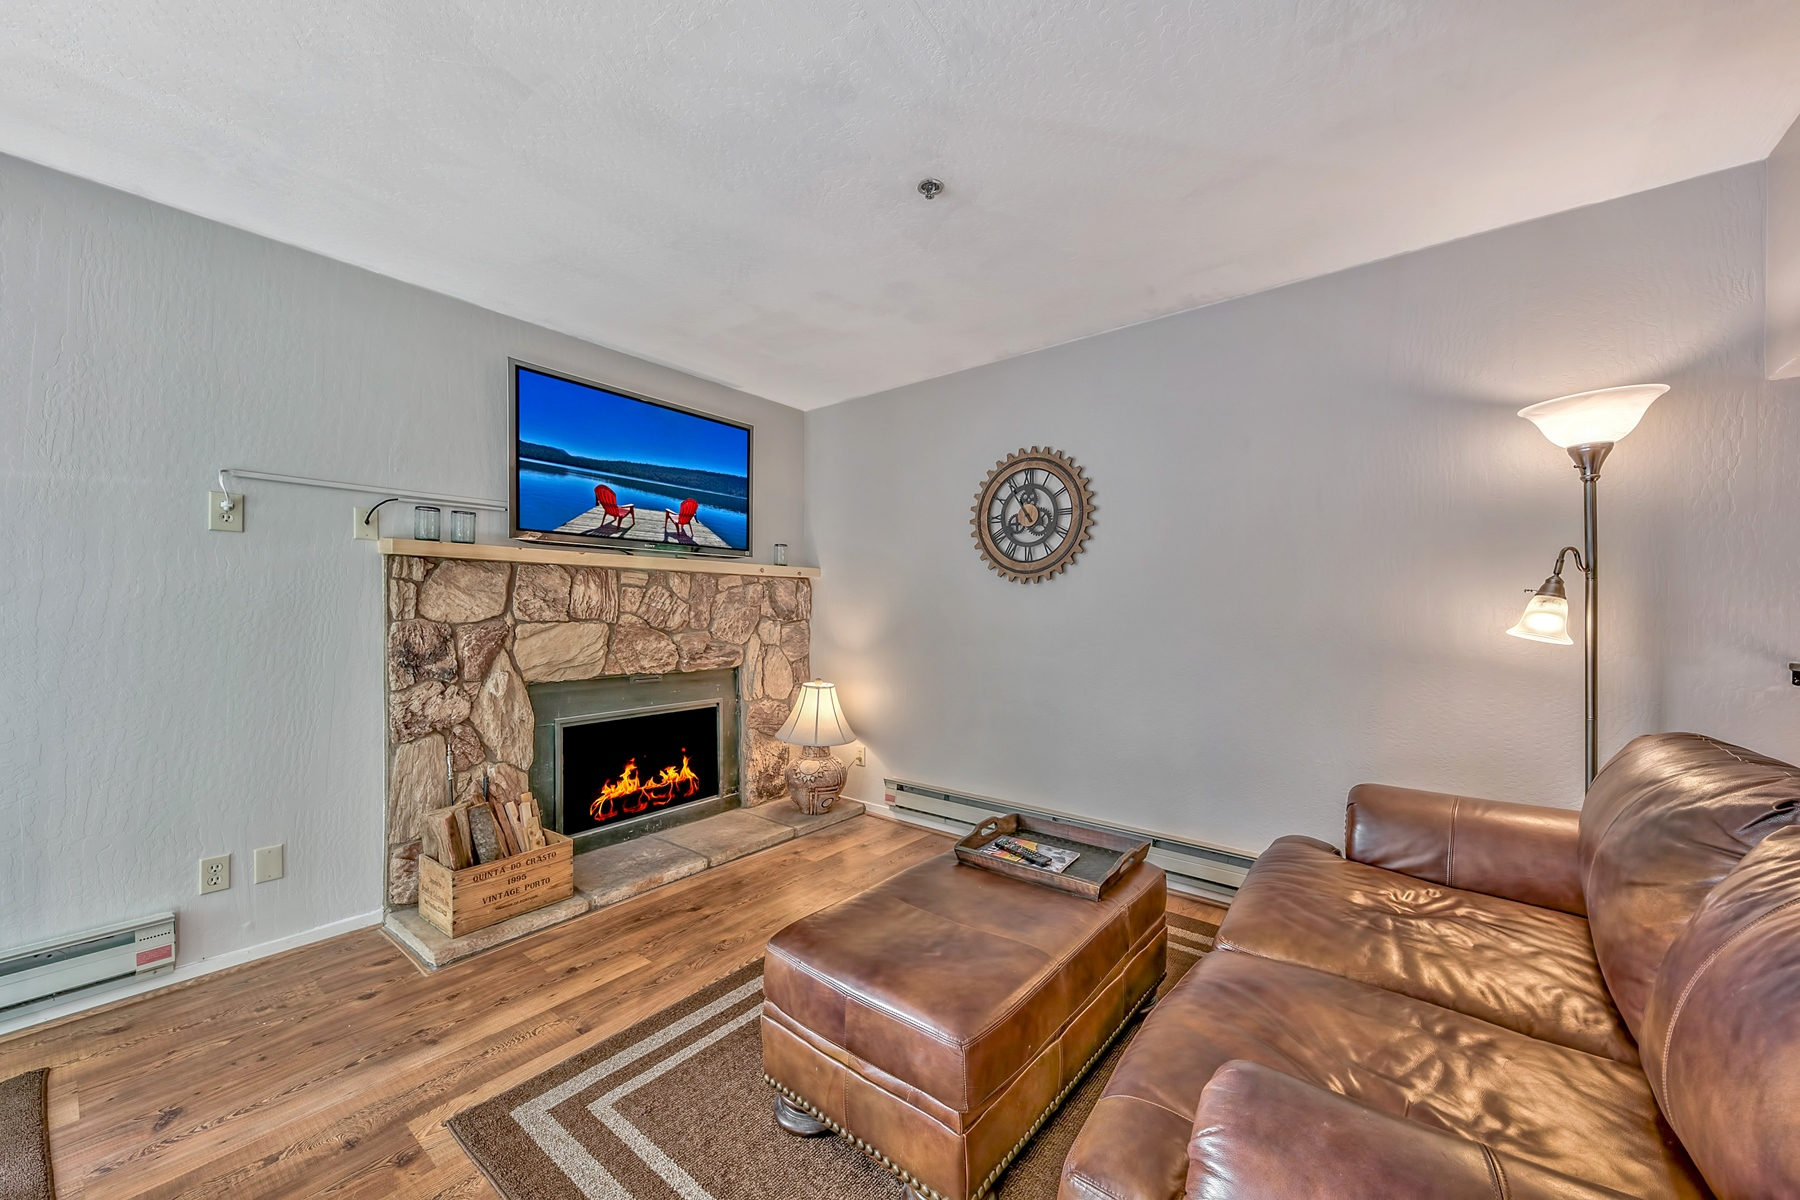 Condominium for Active at 313 Tramway Drive #18, Stateline, NV 89449 313 Tramway Drive #18 Stateline, Nevada 89449 United States